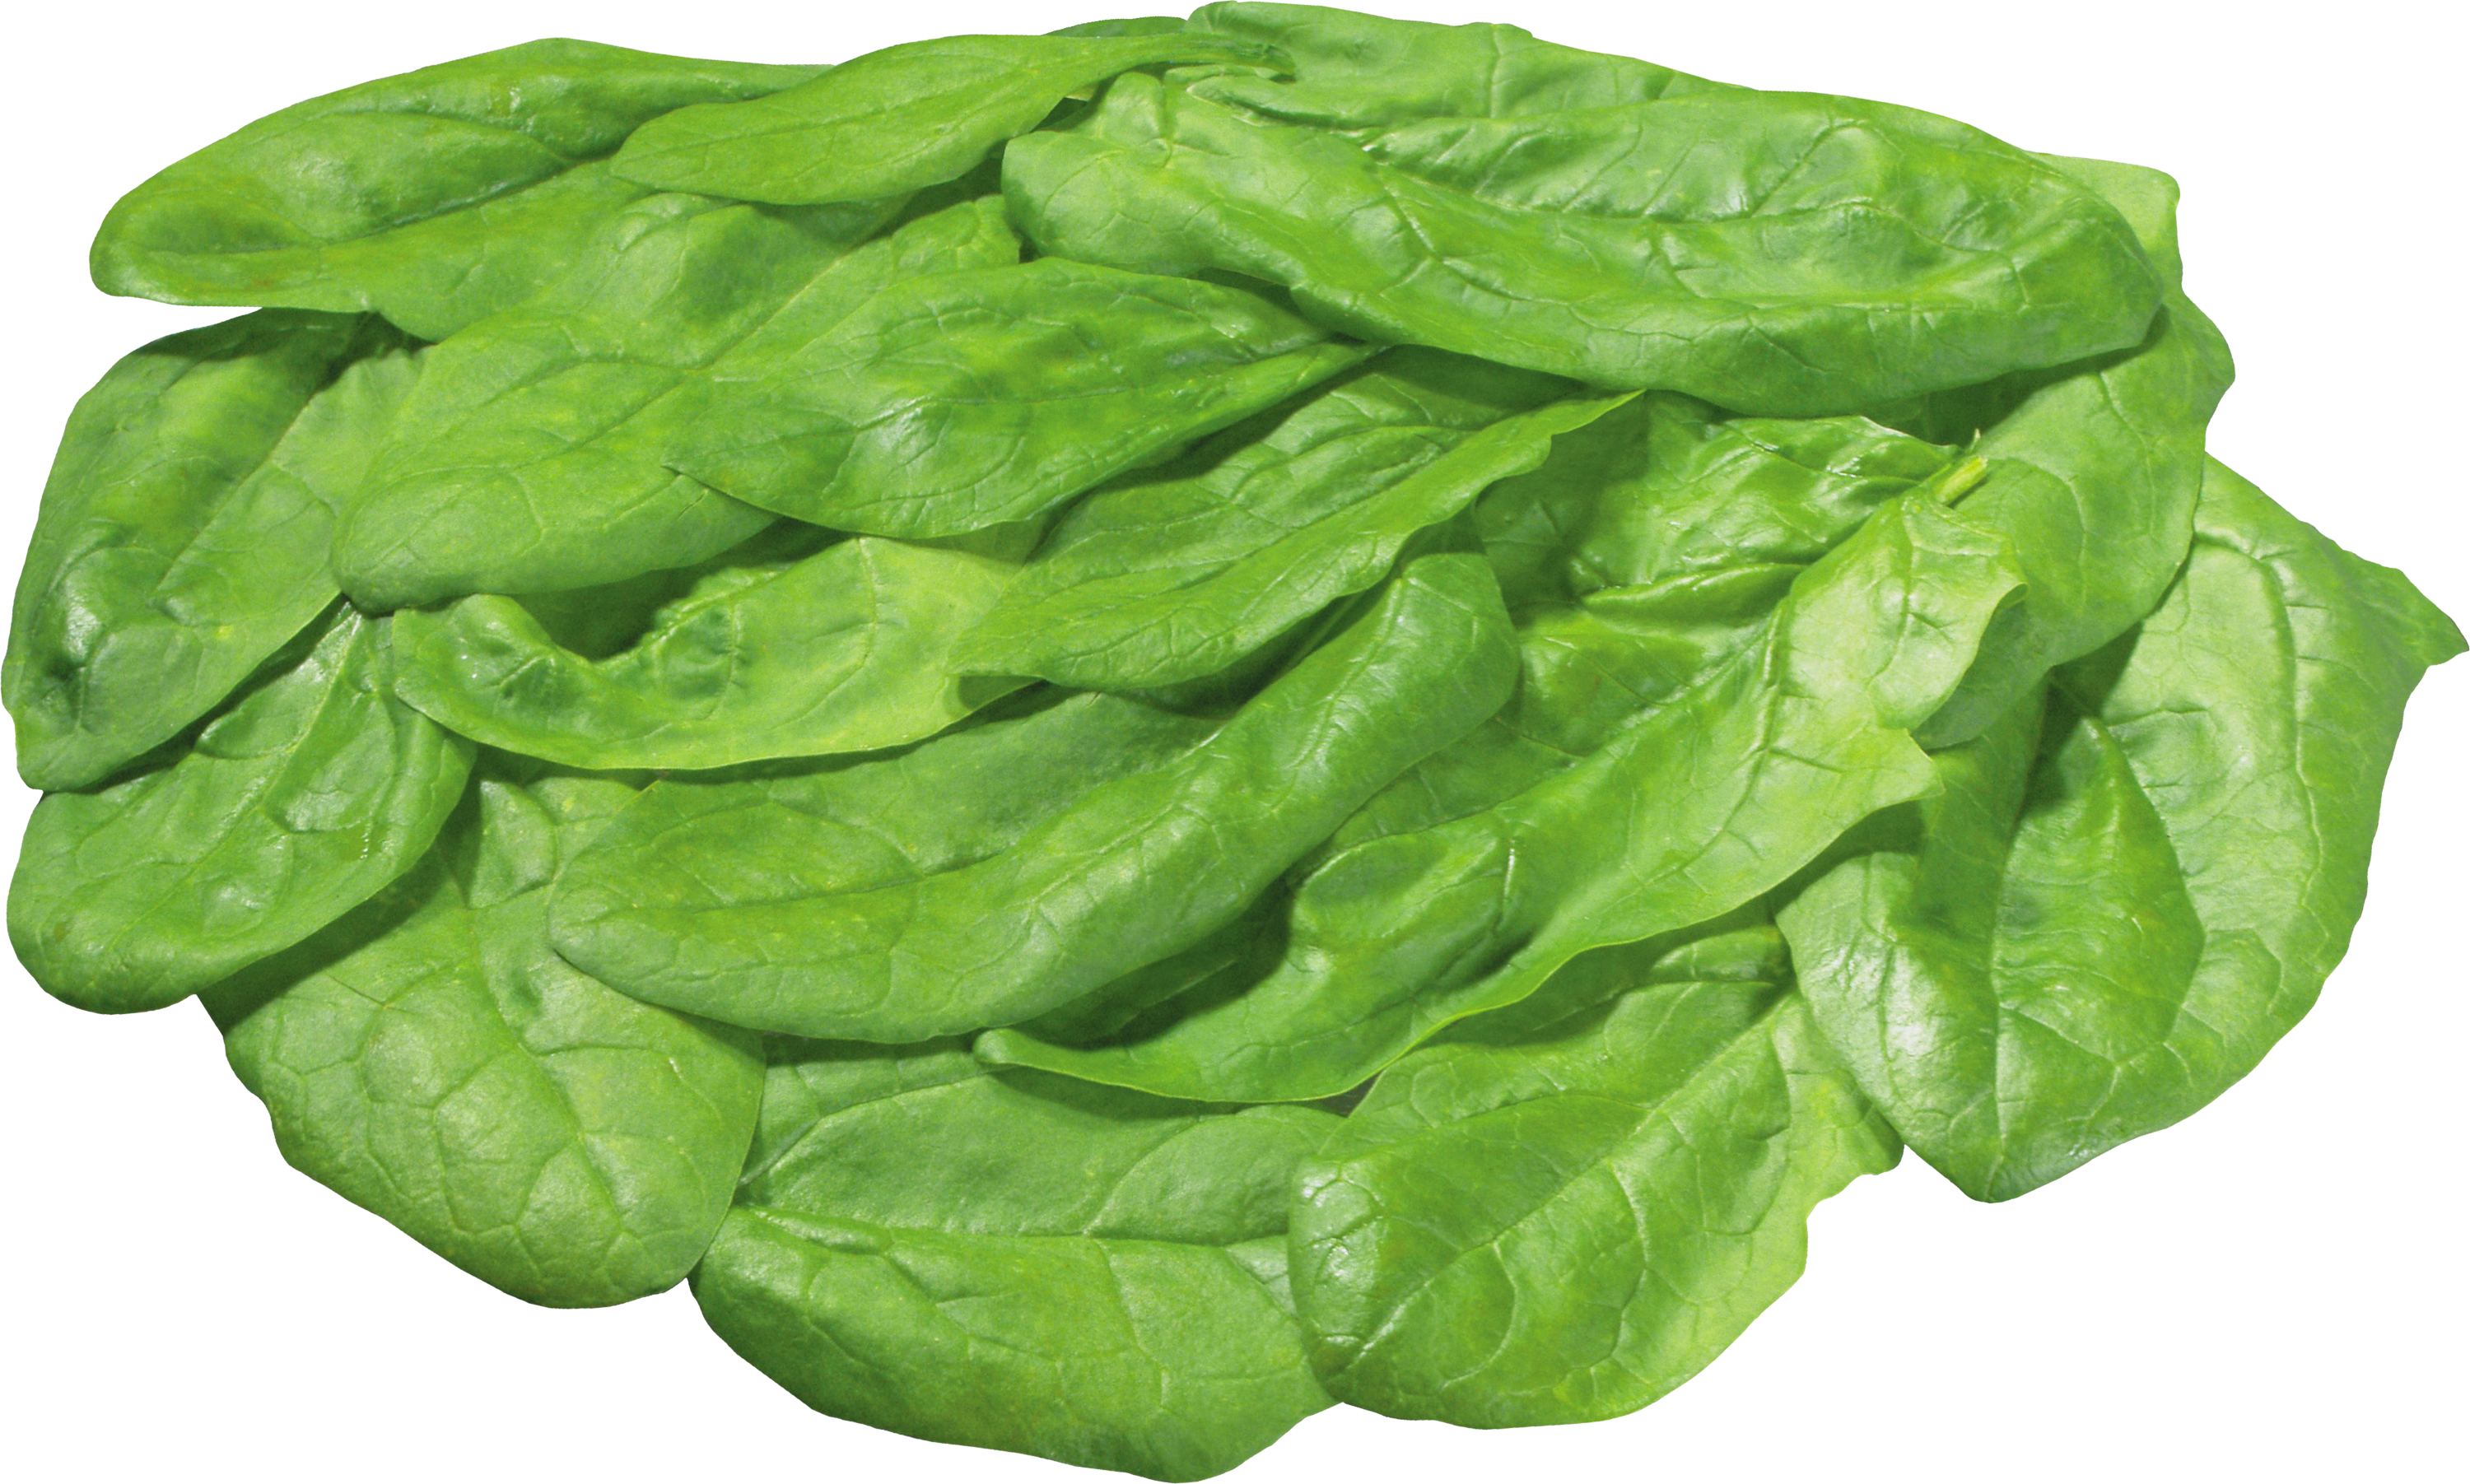 clip free stock Transparent background free on. Lettuce clipart head lettuce.